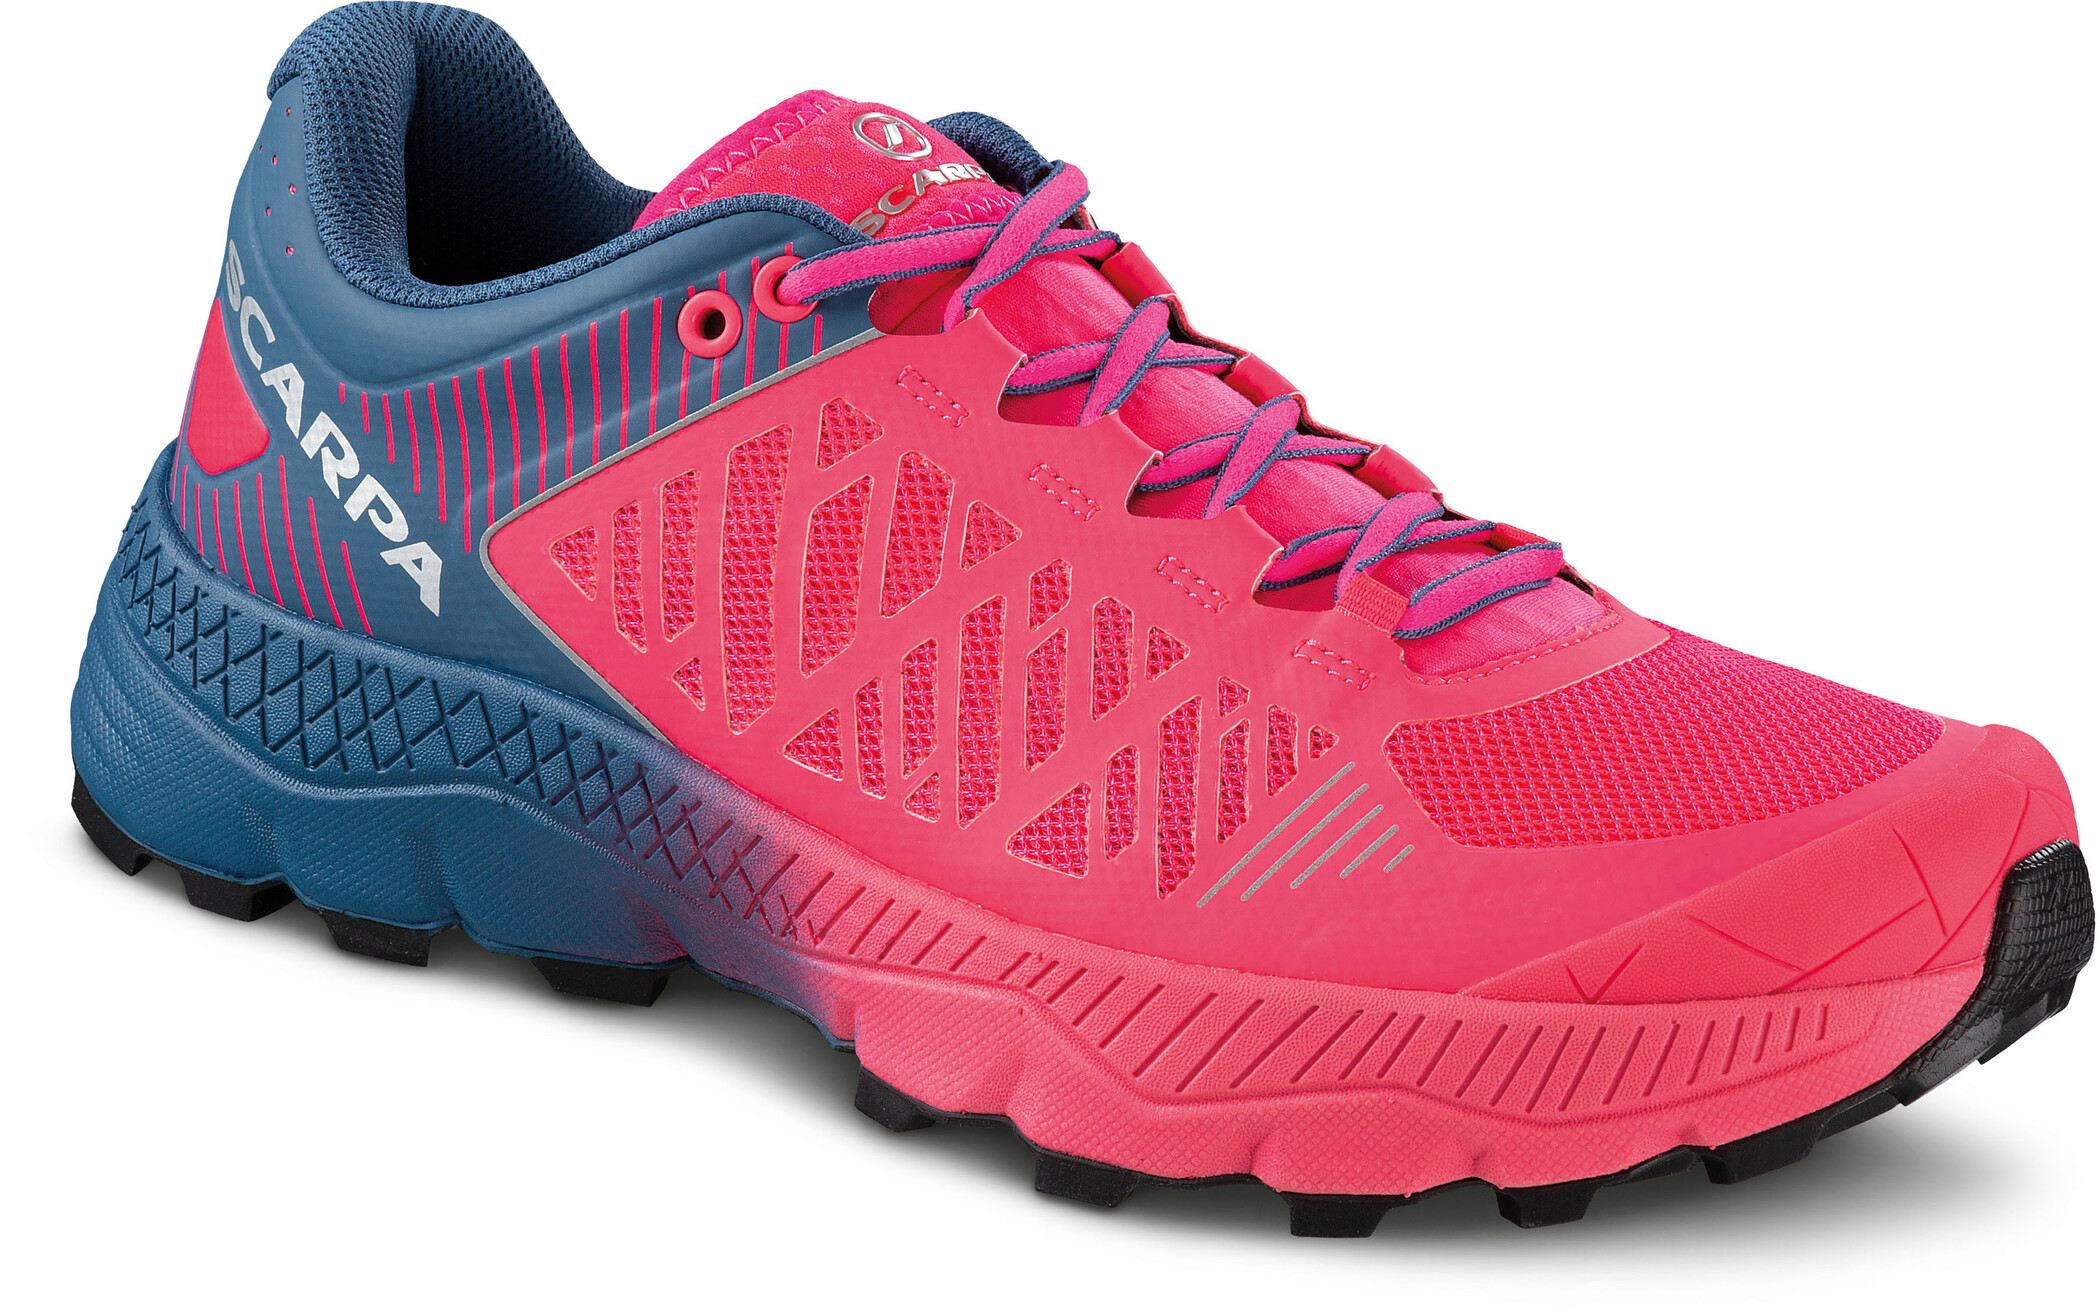 Scarpa Spin Ultra Trail Running Shoes Women rose fluo blue steel